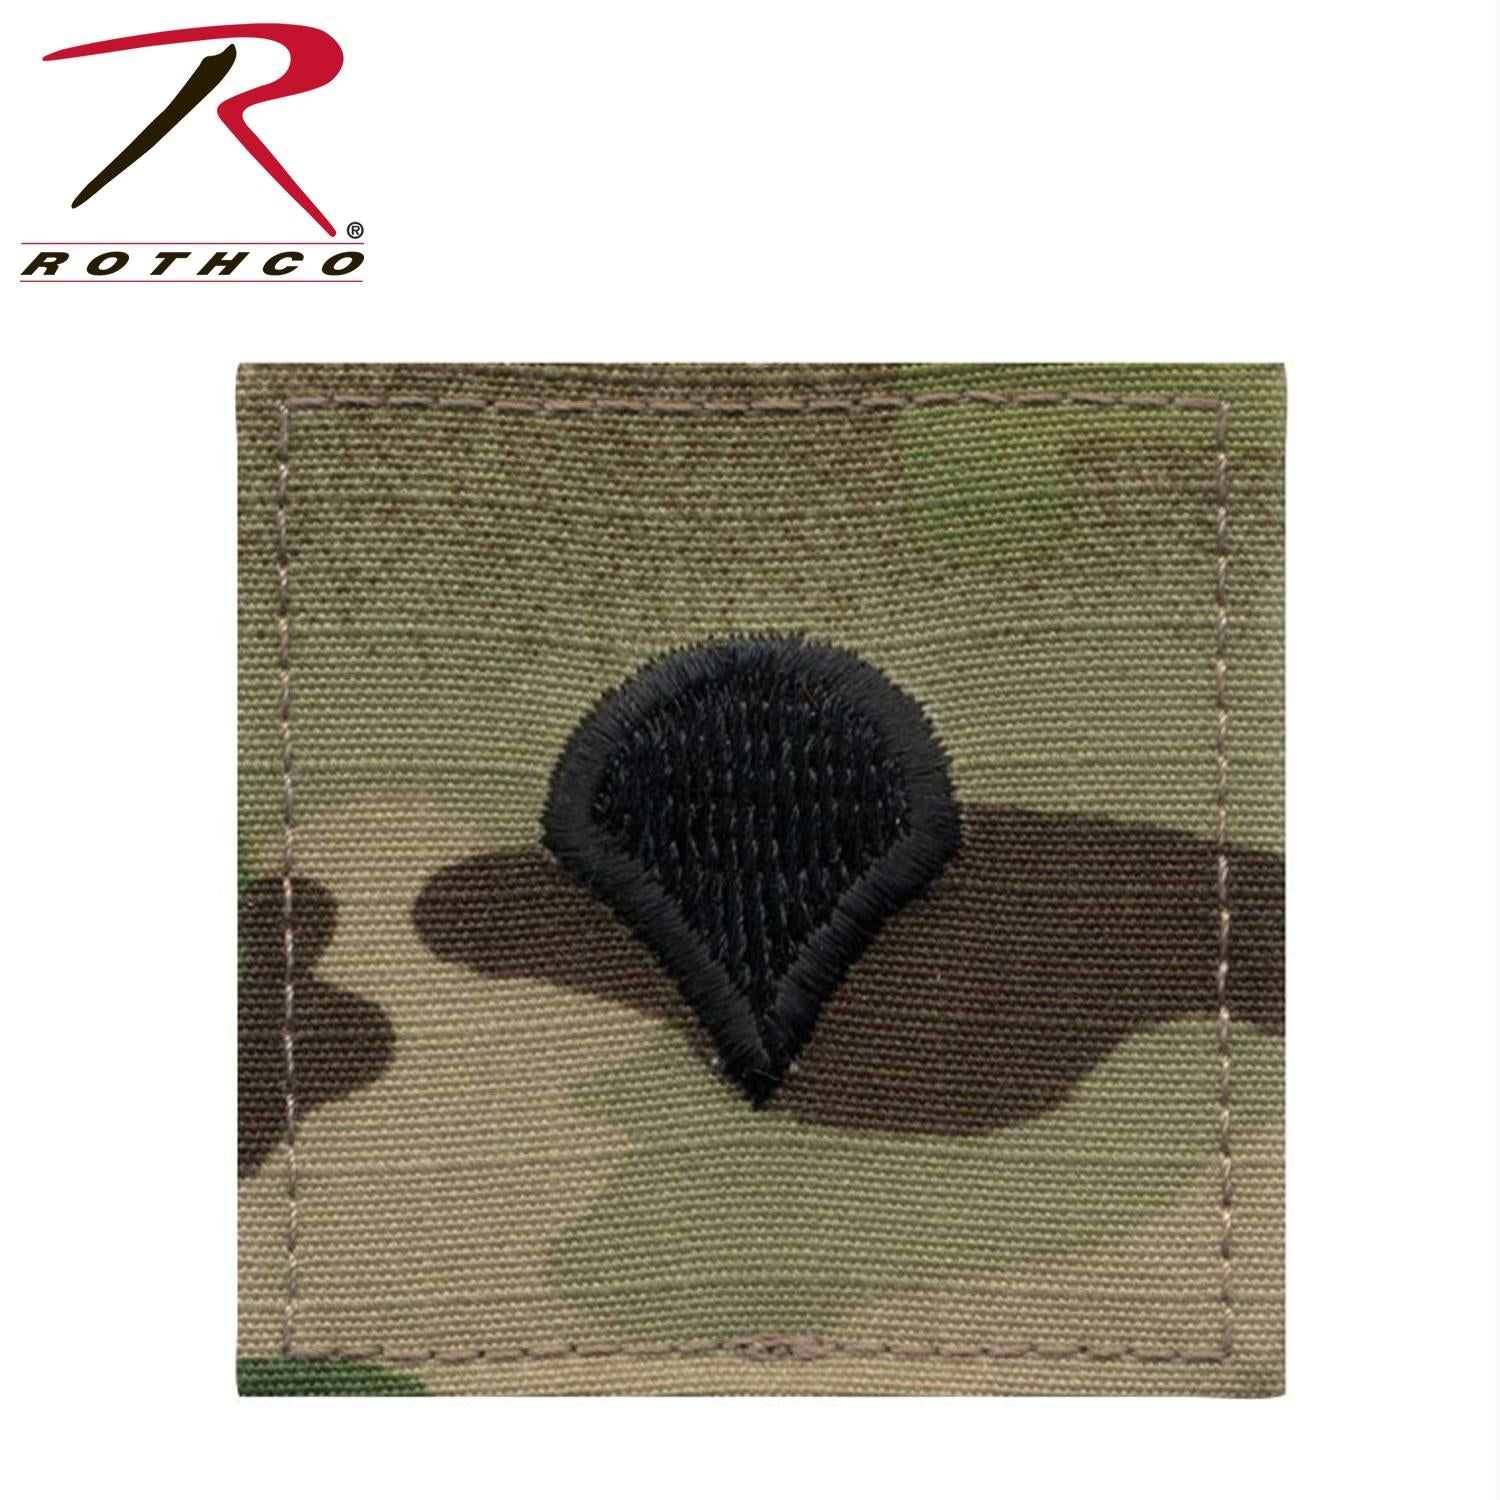 Rothco Official U.S. Made Embroidered Rank Insignia Spec-4 - MultiCam